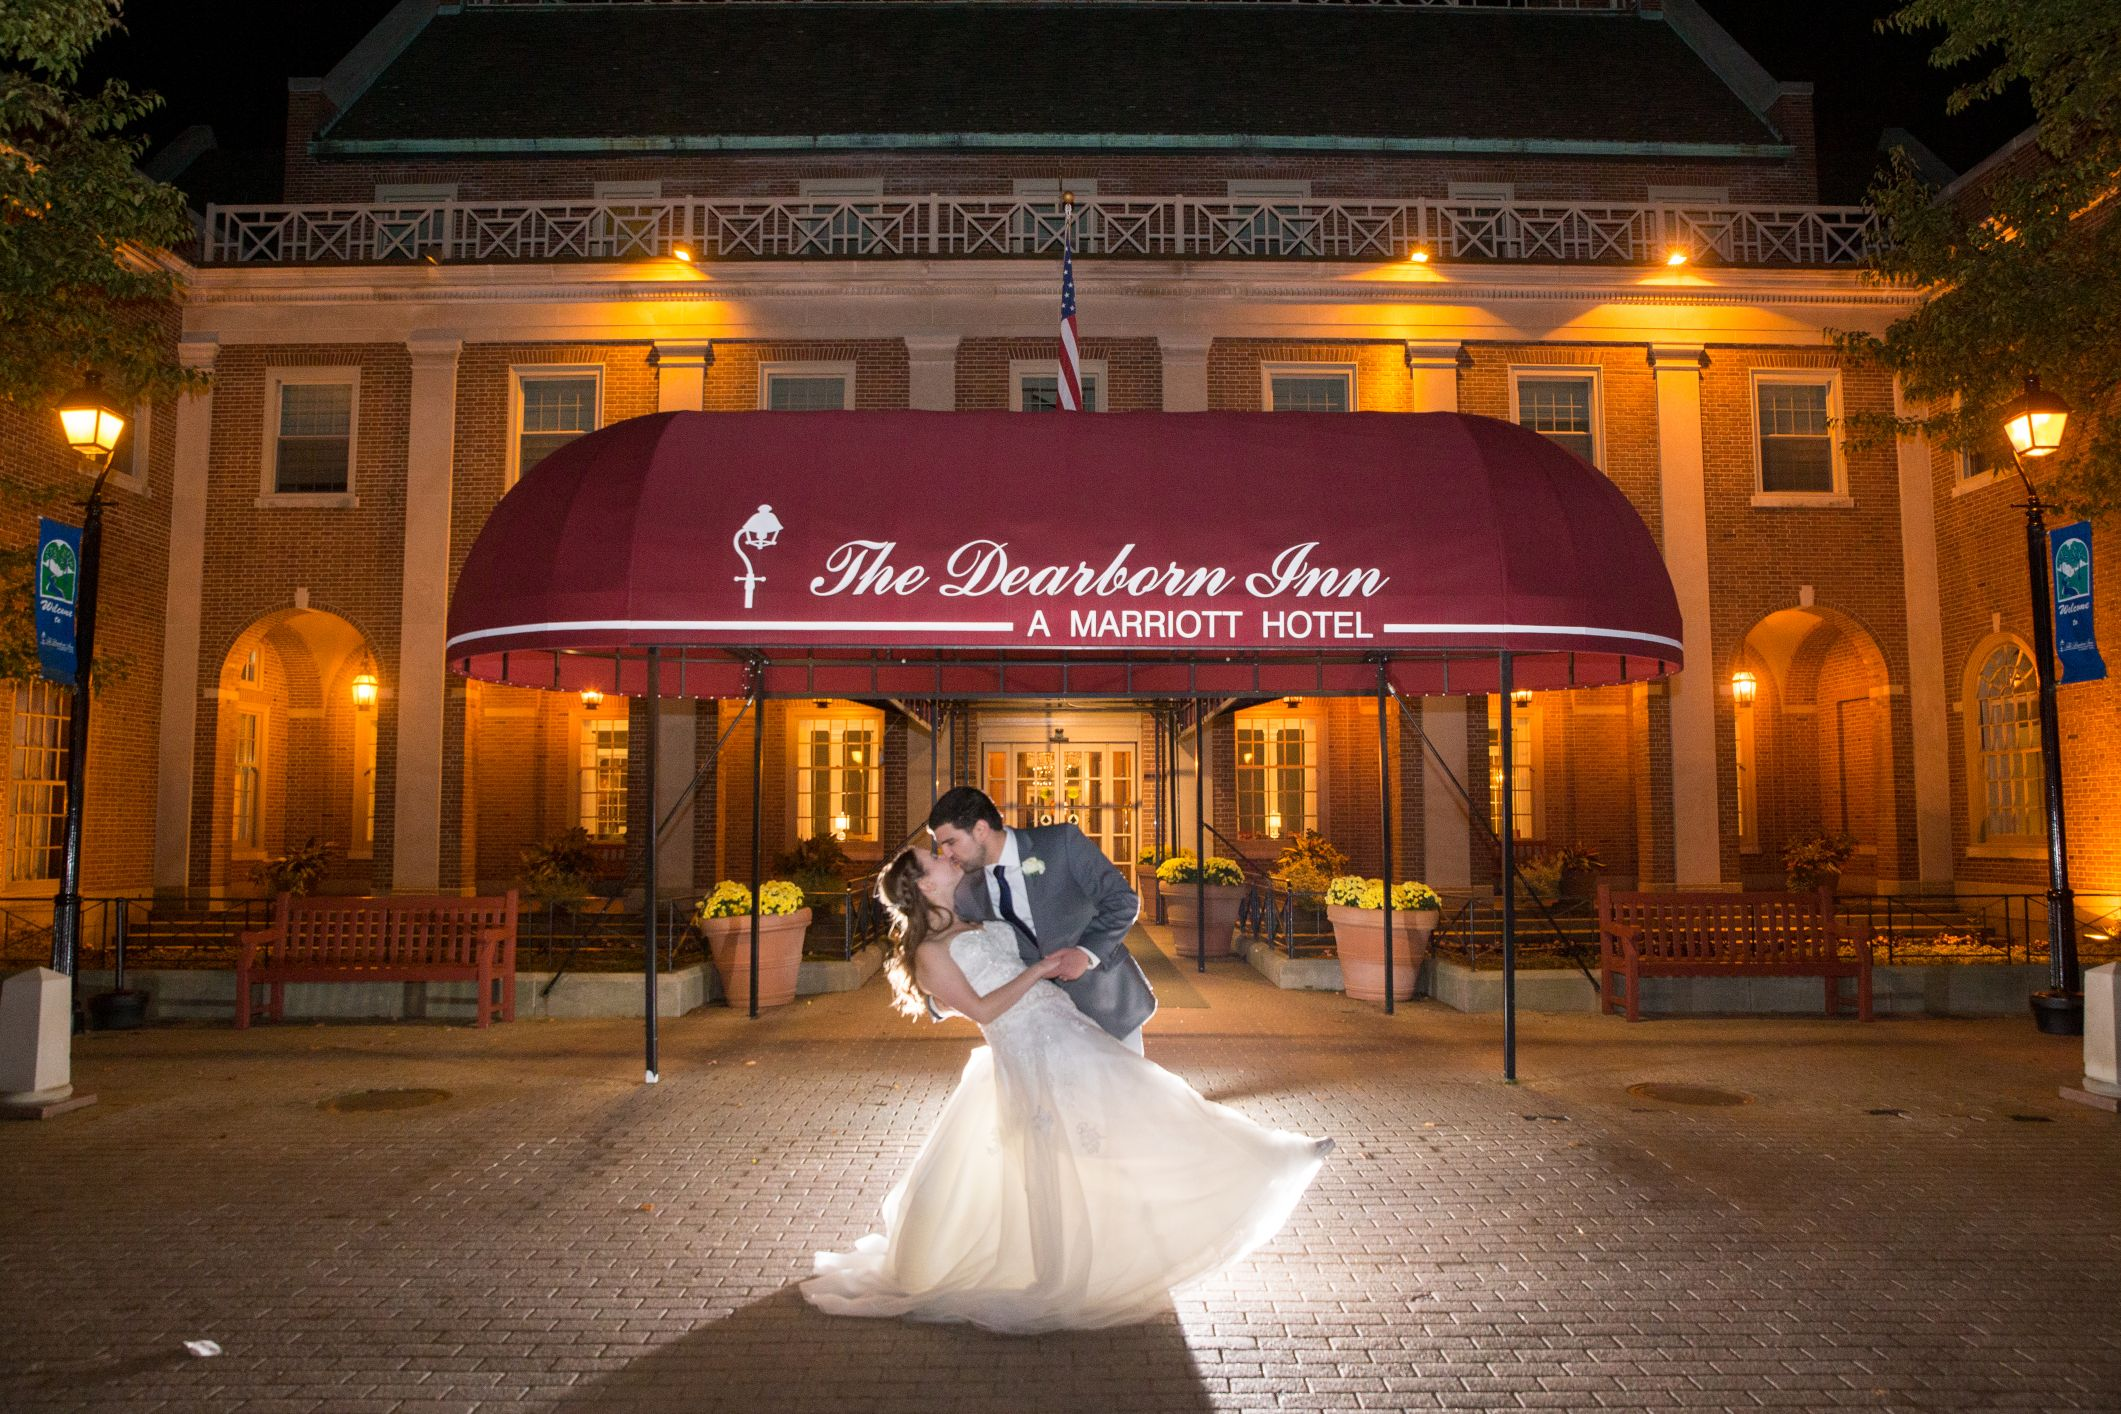 evening romantics at dearborn inn